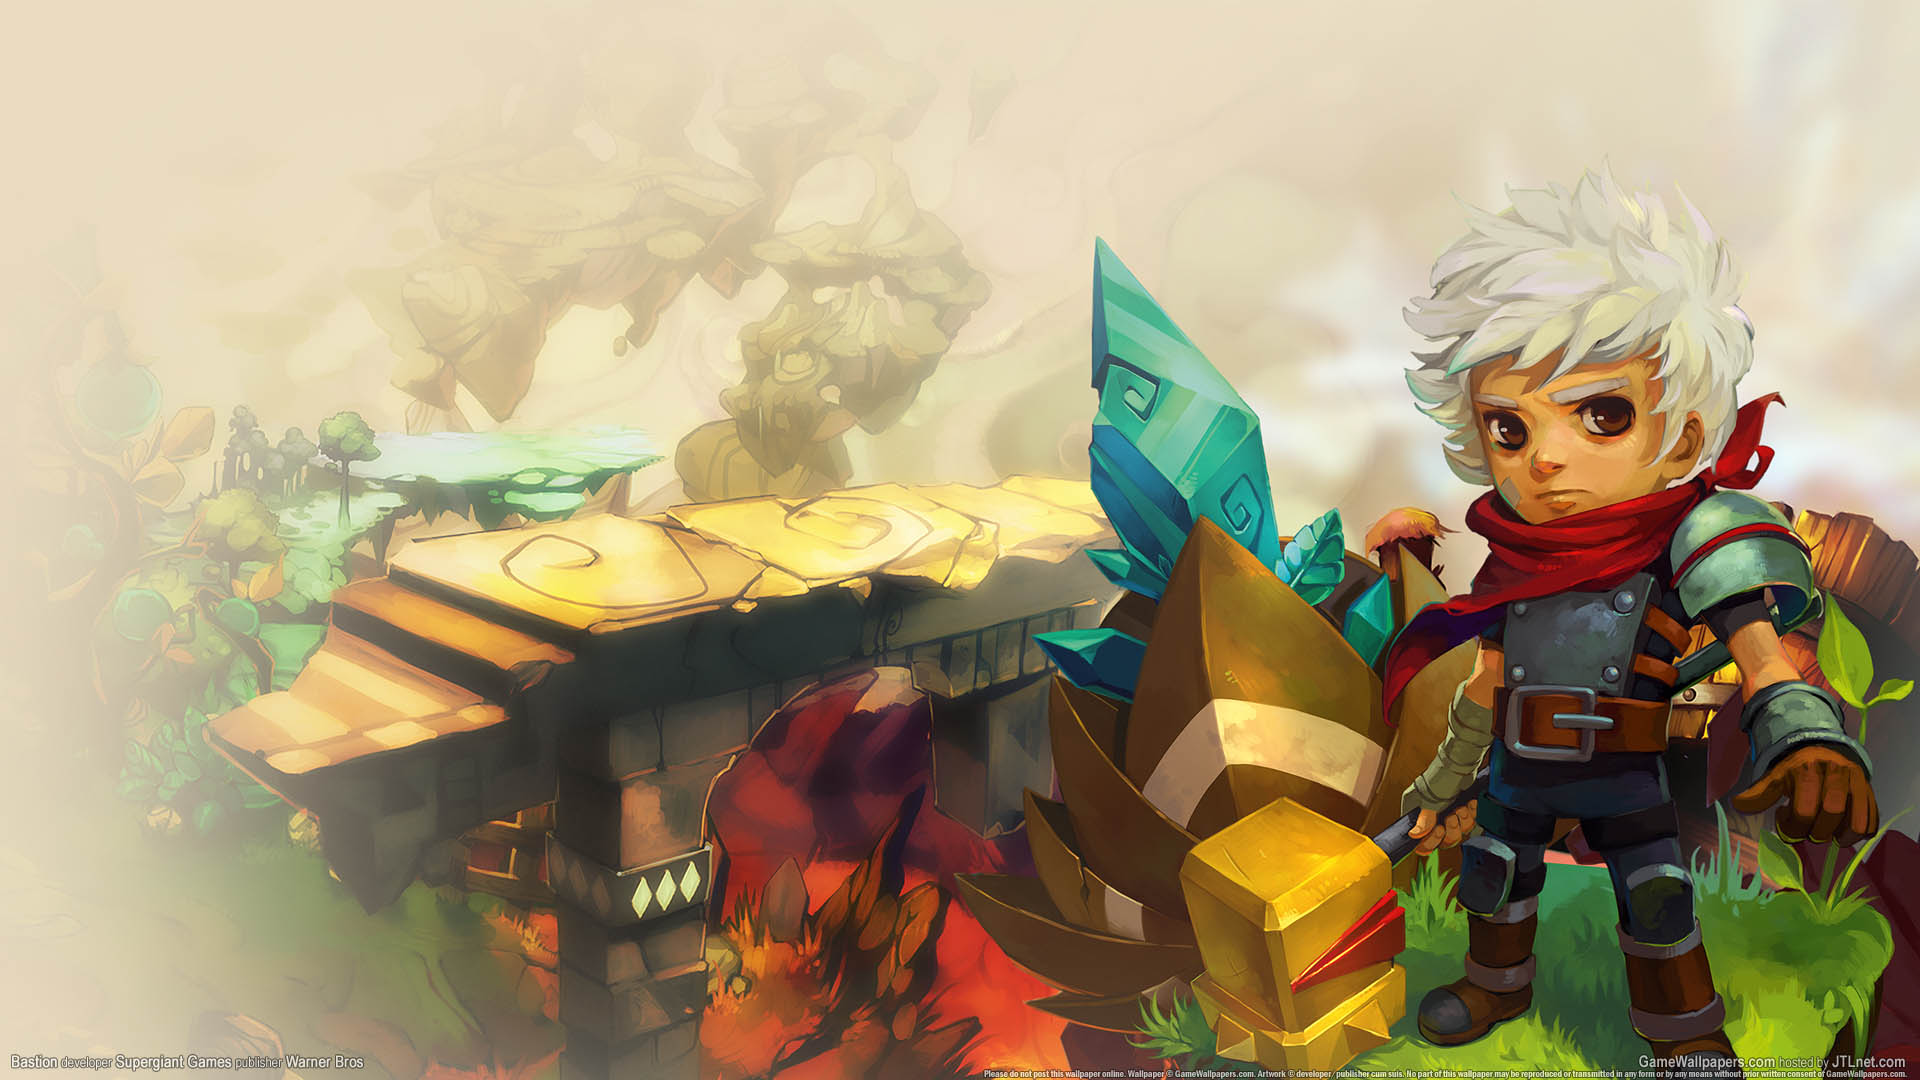 Bastion wallpaper 01 1920x1080